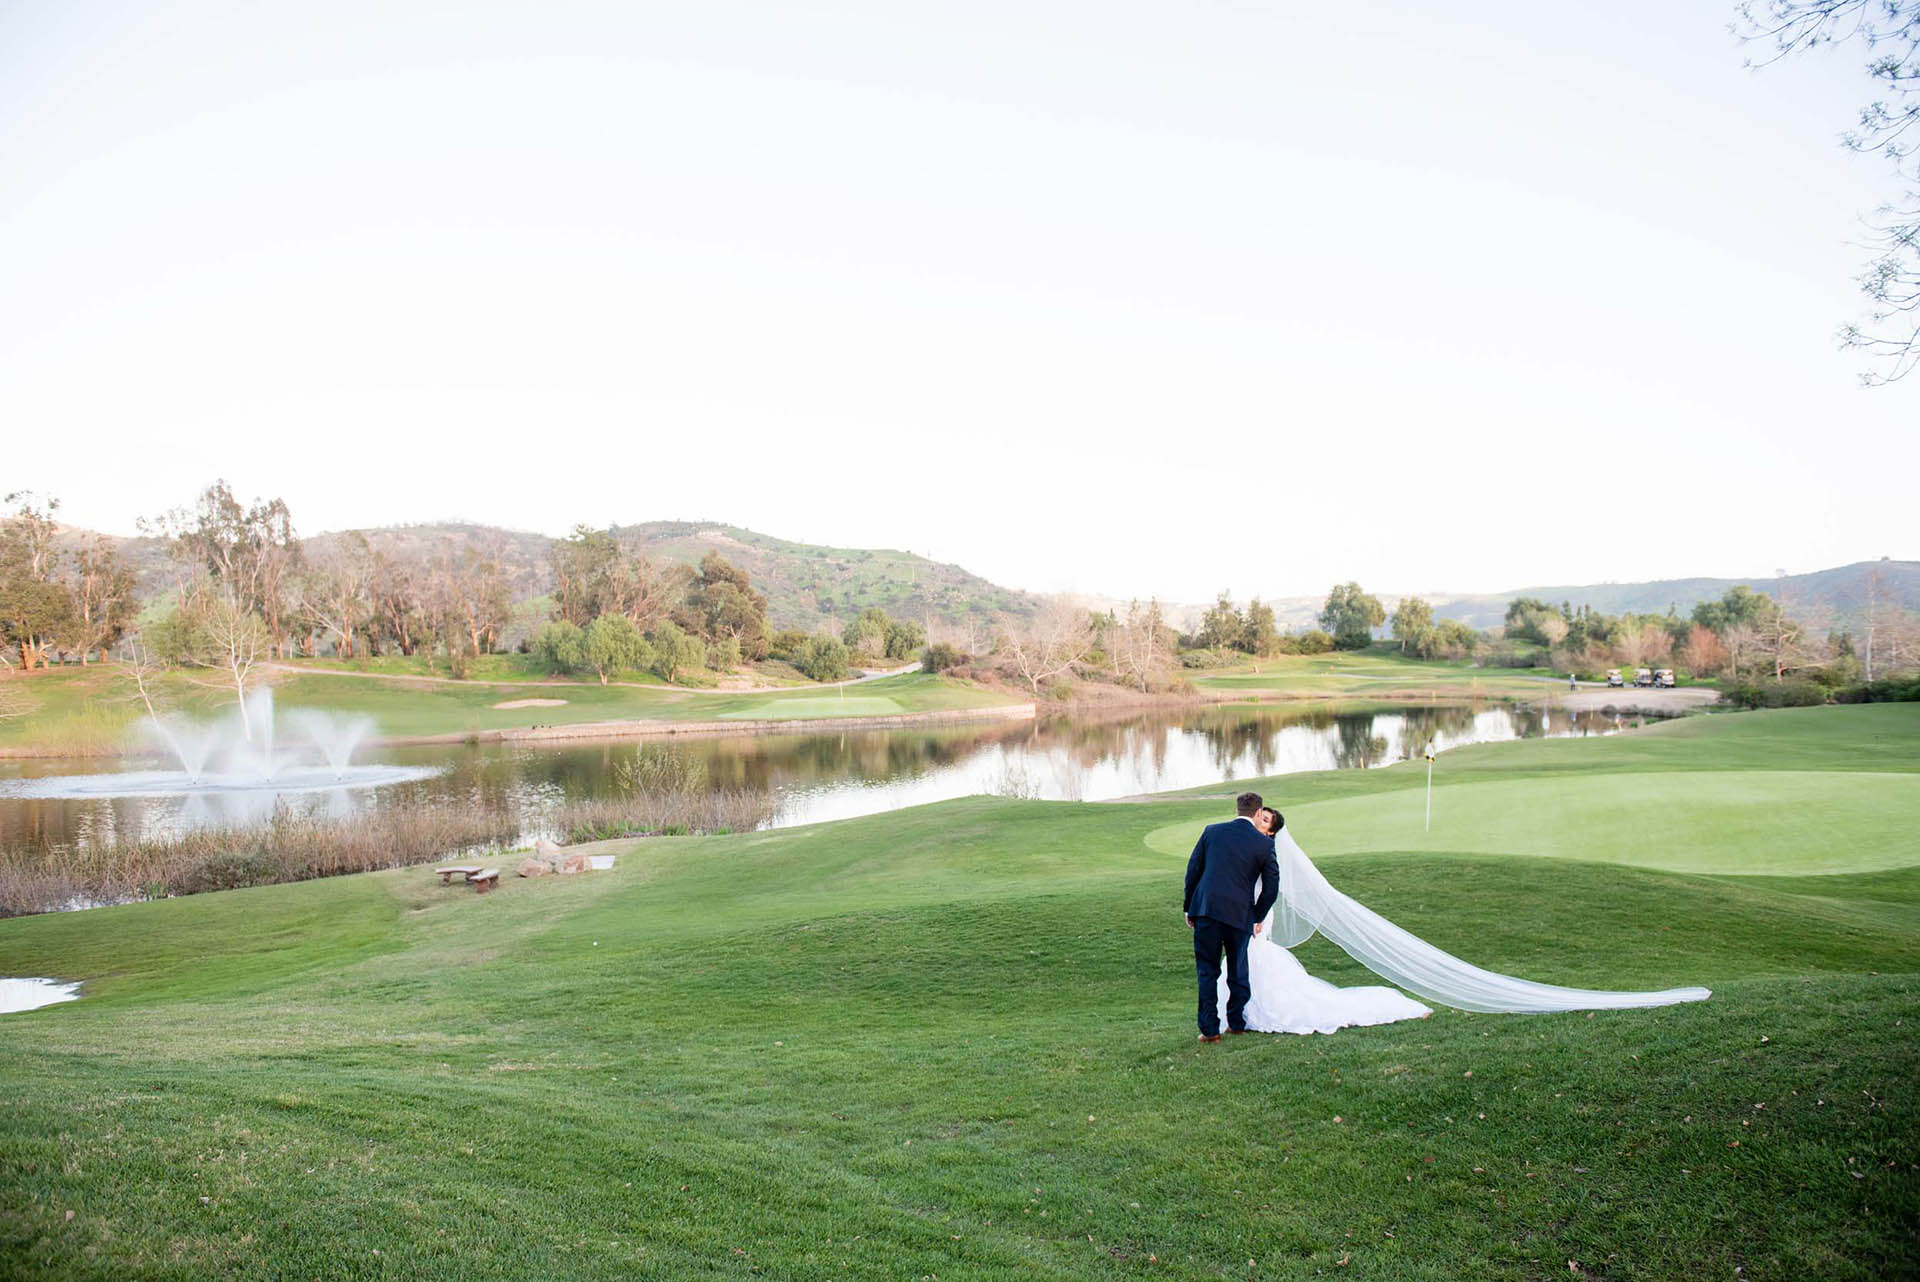 Gorgeous lake and golf course backdrop